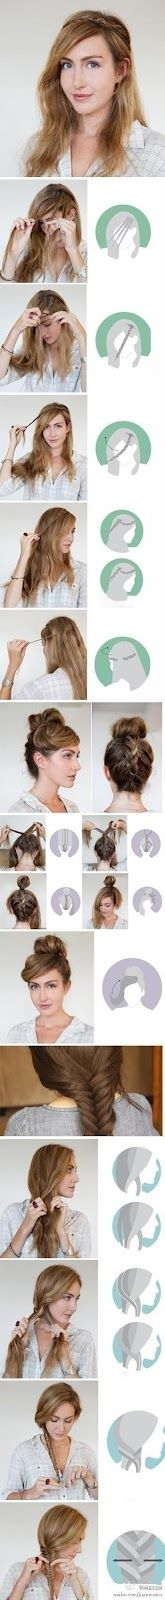 If only I was skilled enough to do hairstyles like these. Sigh.